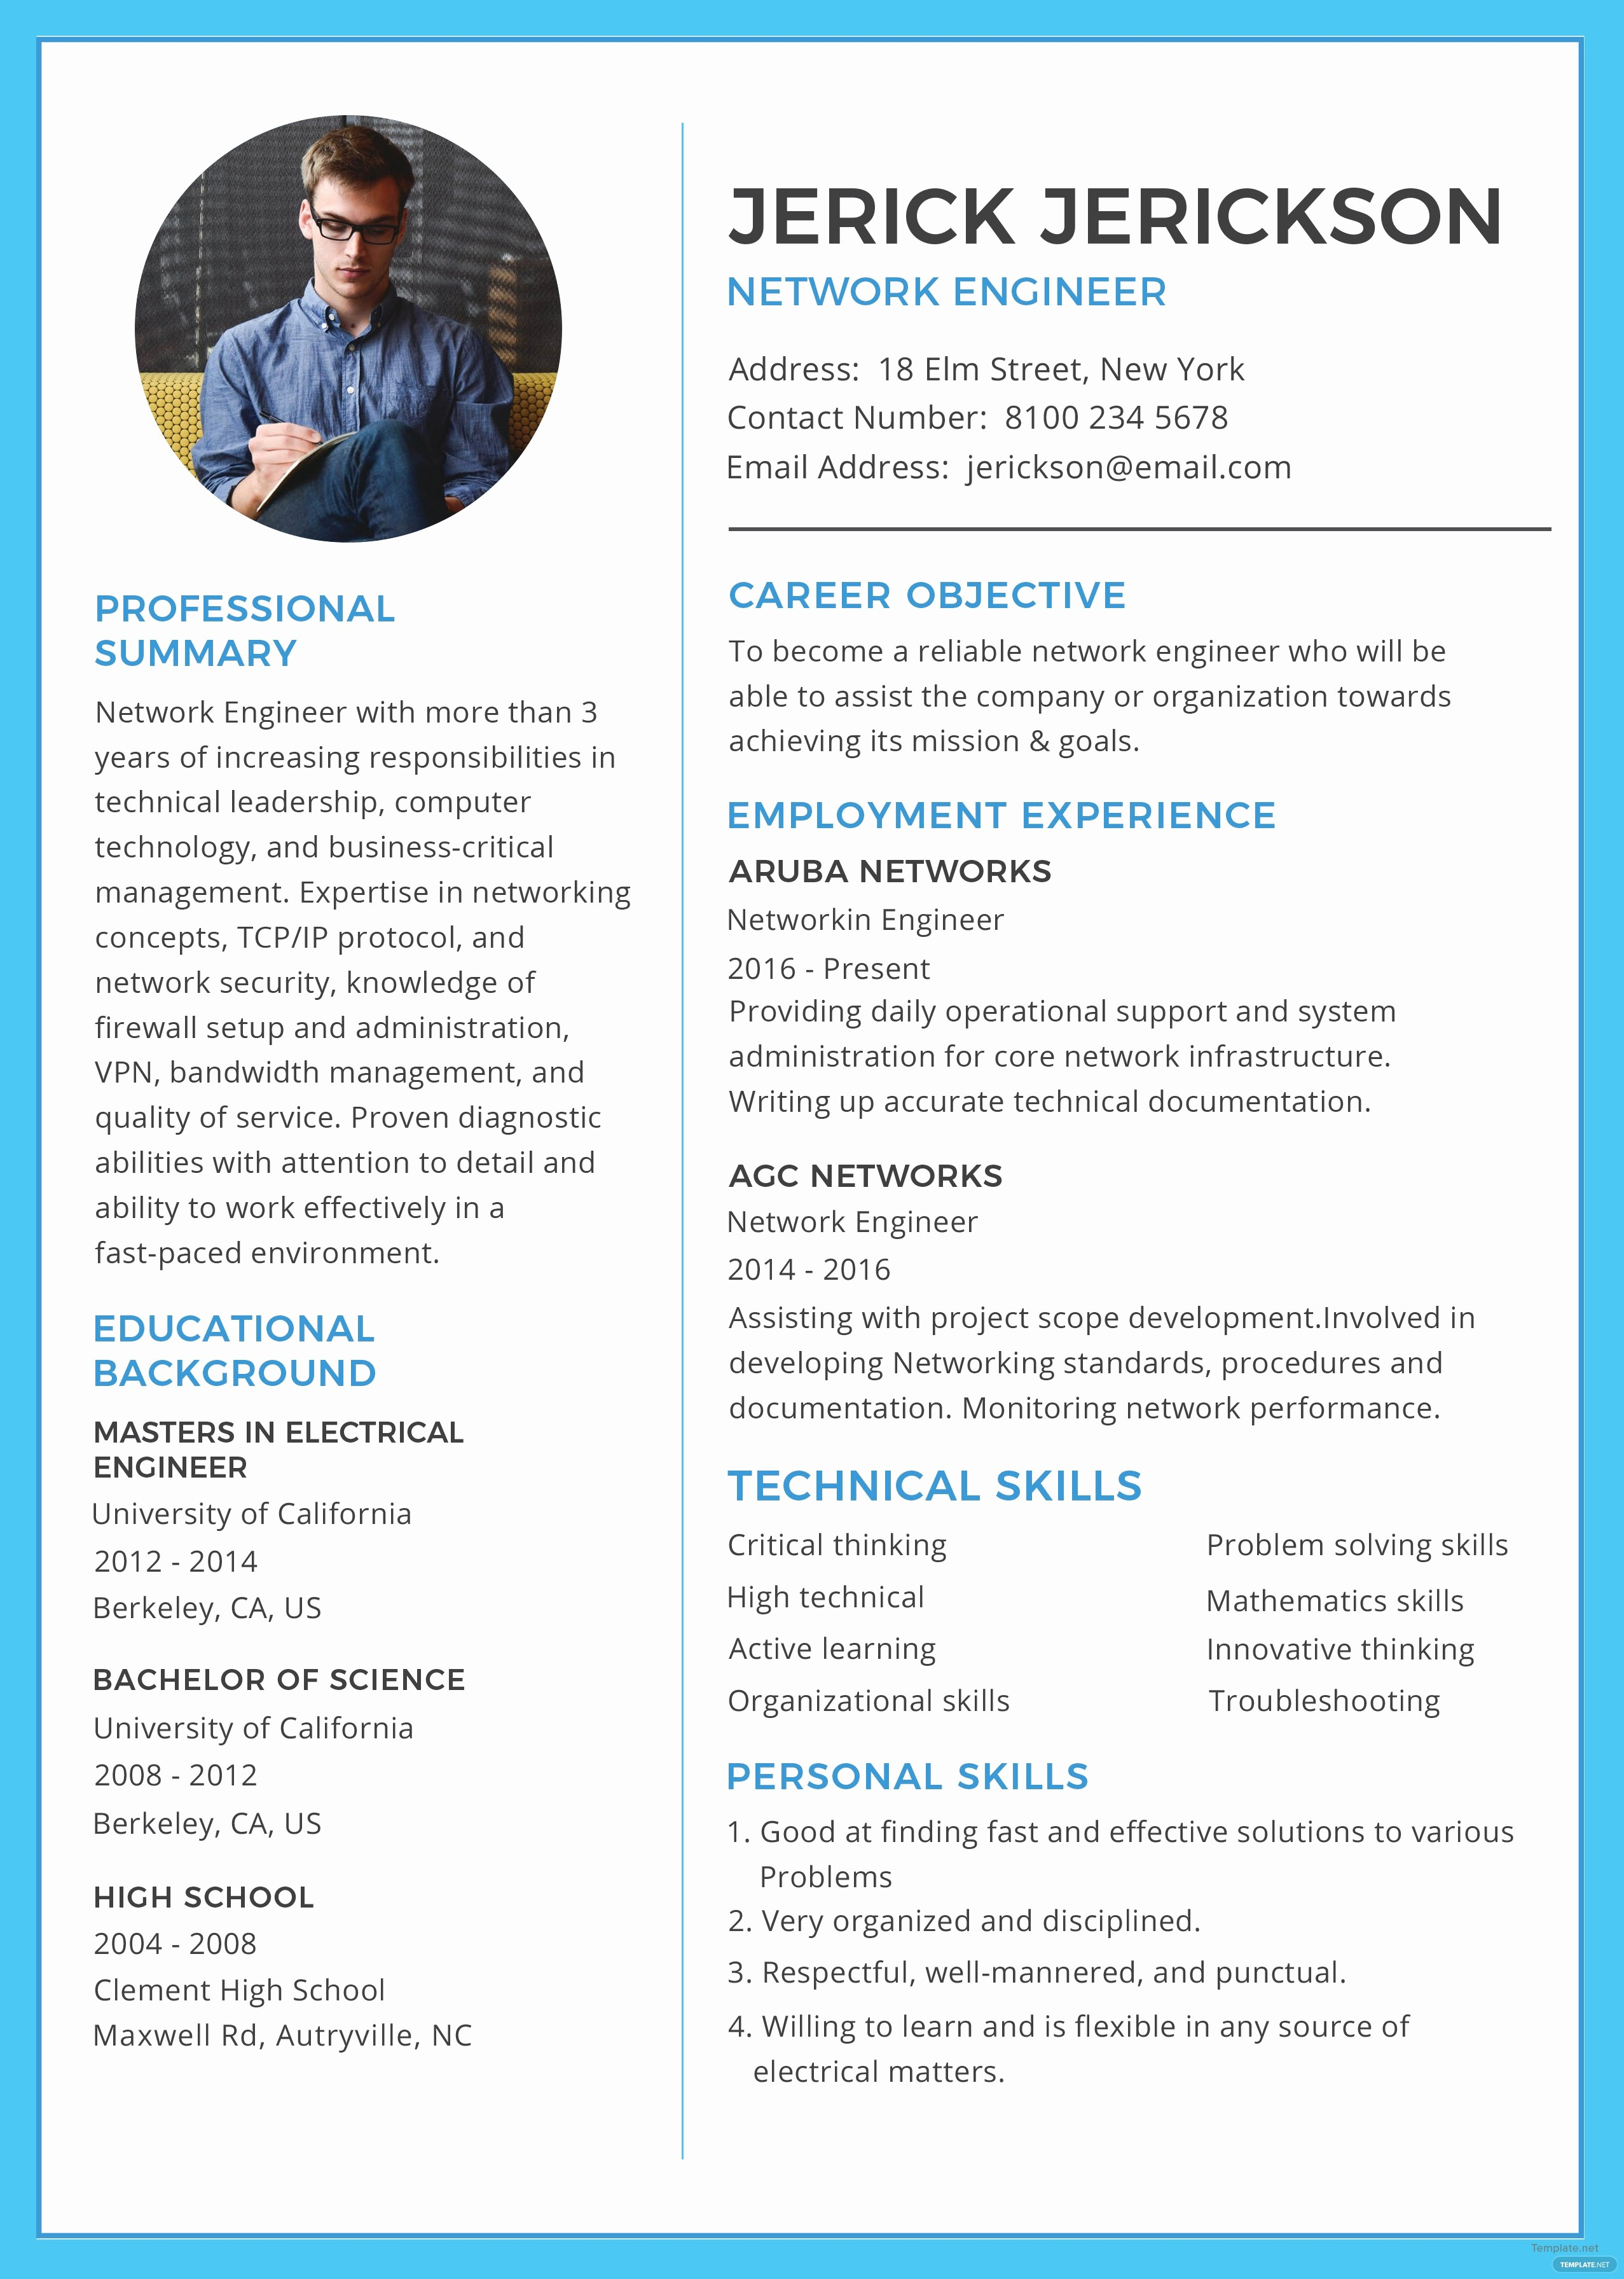 A Template for A Resume Awesome Free Basic Network Engineer Resume and Cv Template In